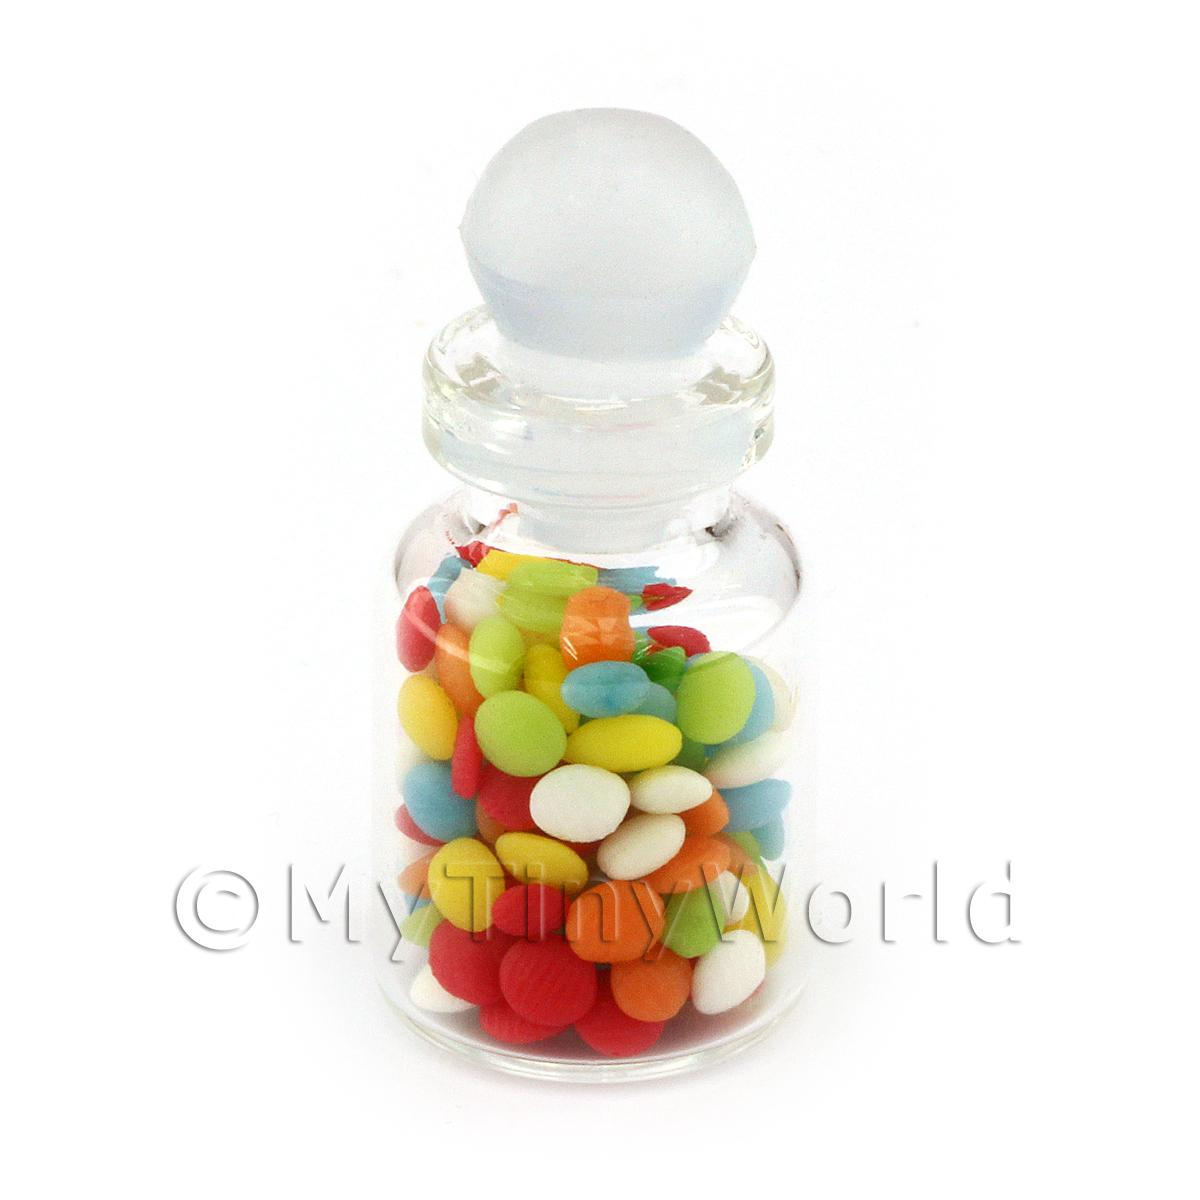 Dolls House Miniature Handmade Boiled Sweets In A Glass Jar